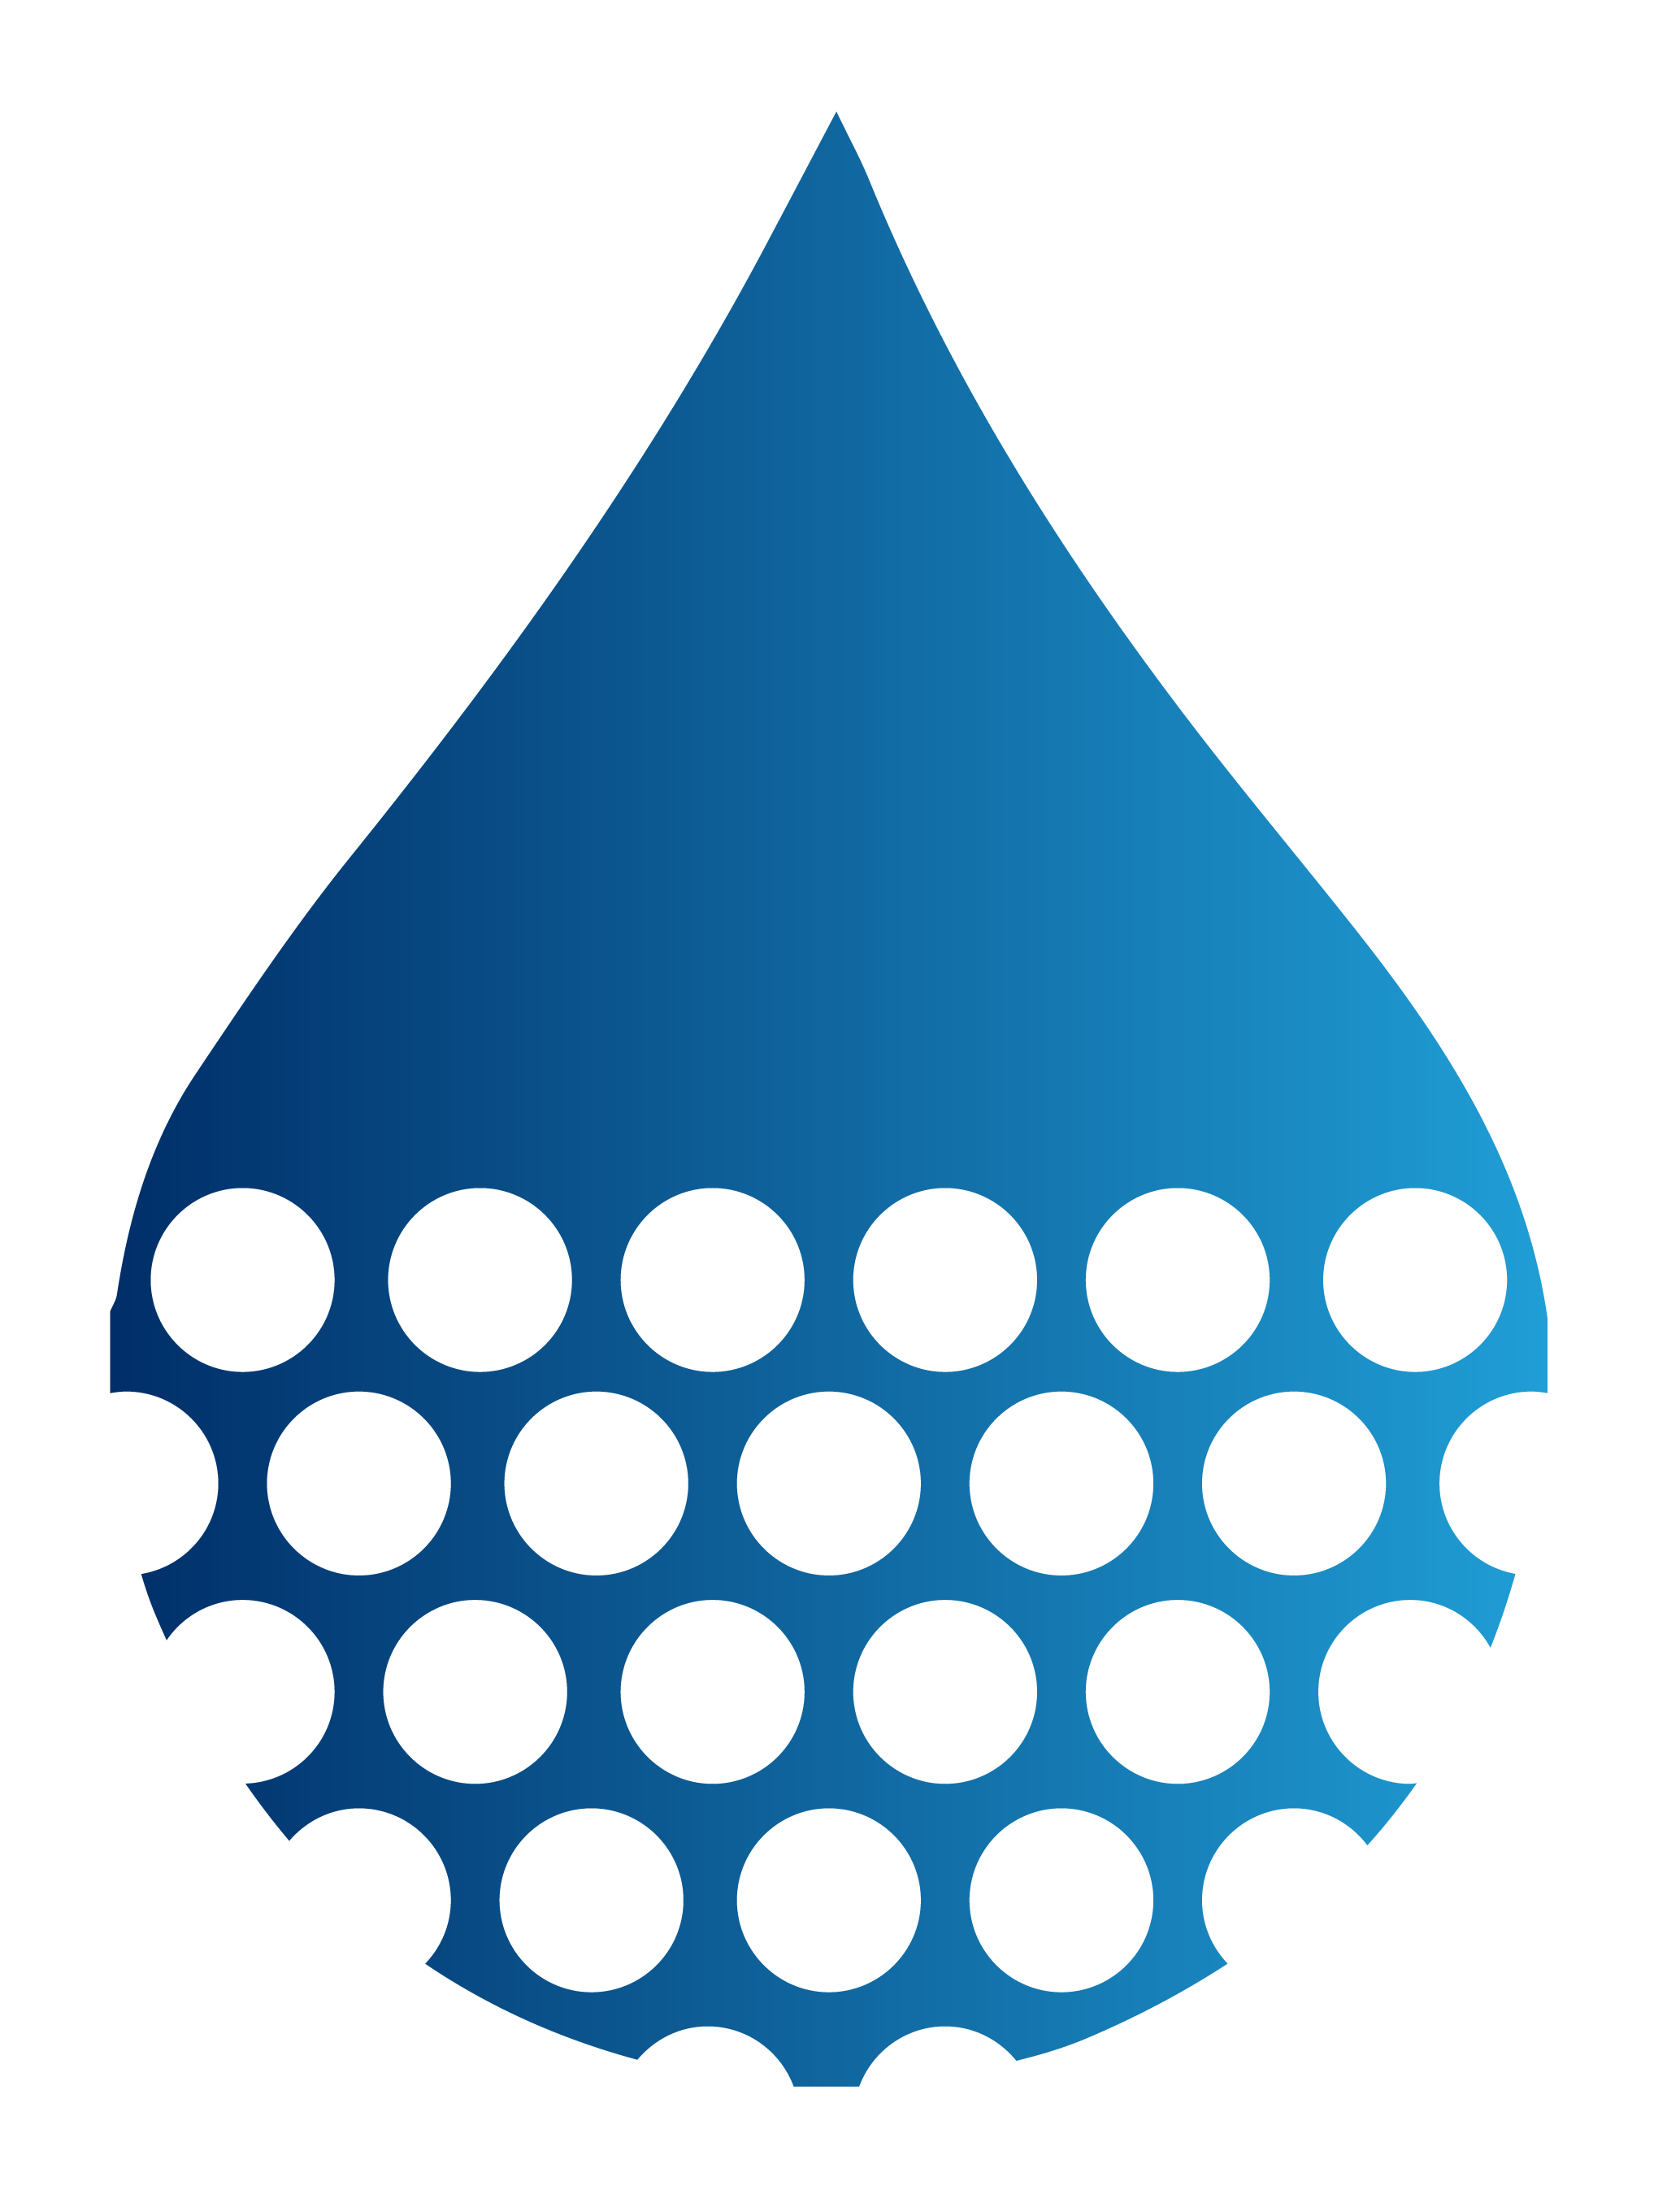 Reflex Logo (WATER DROP) HR.png